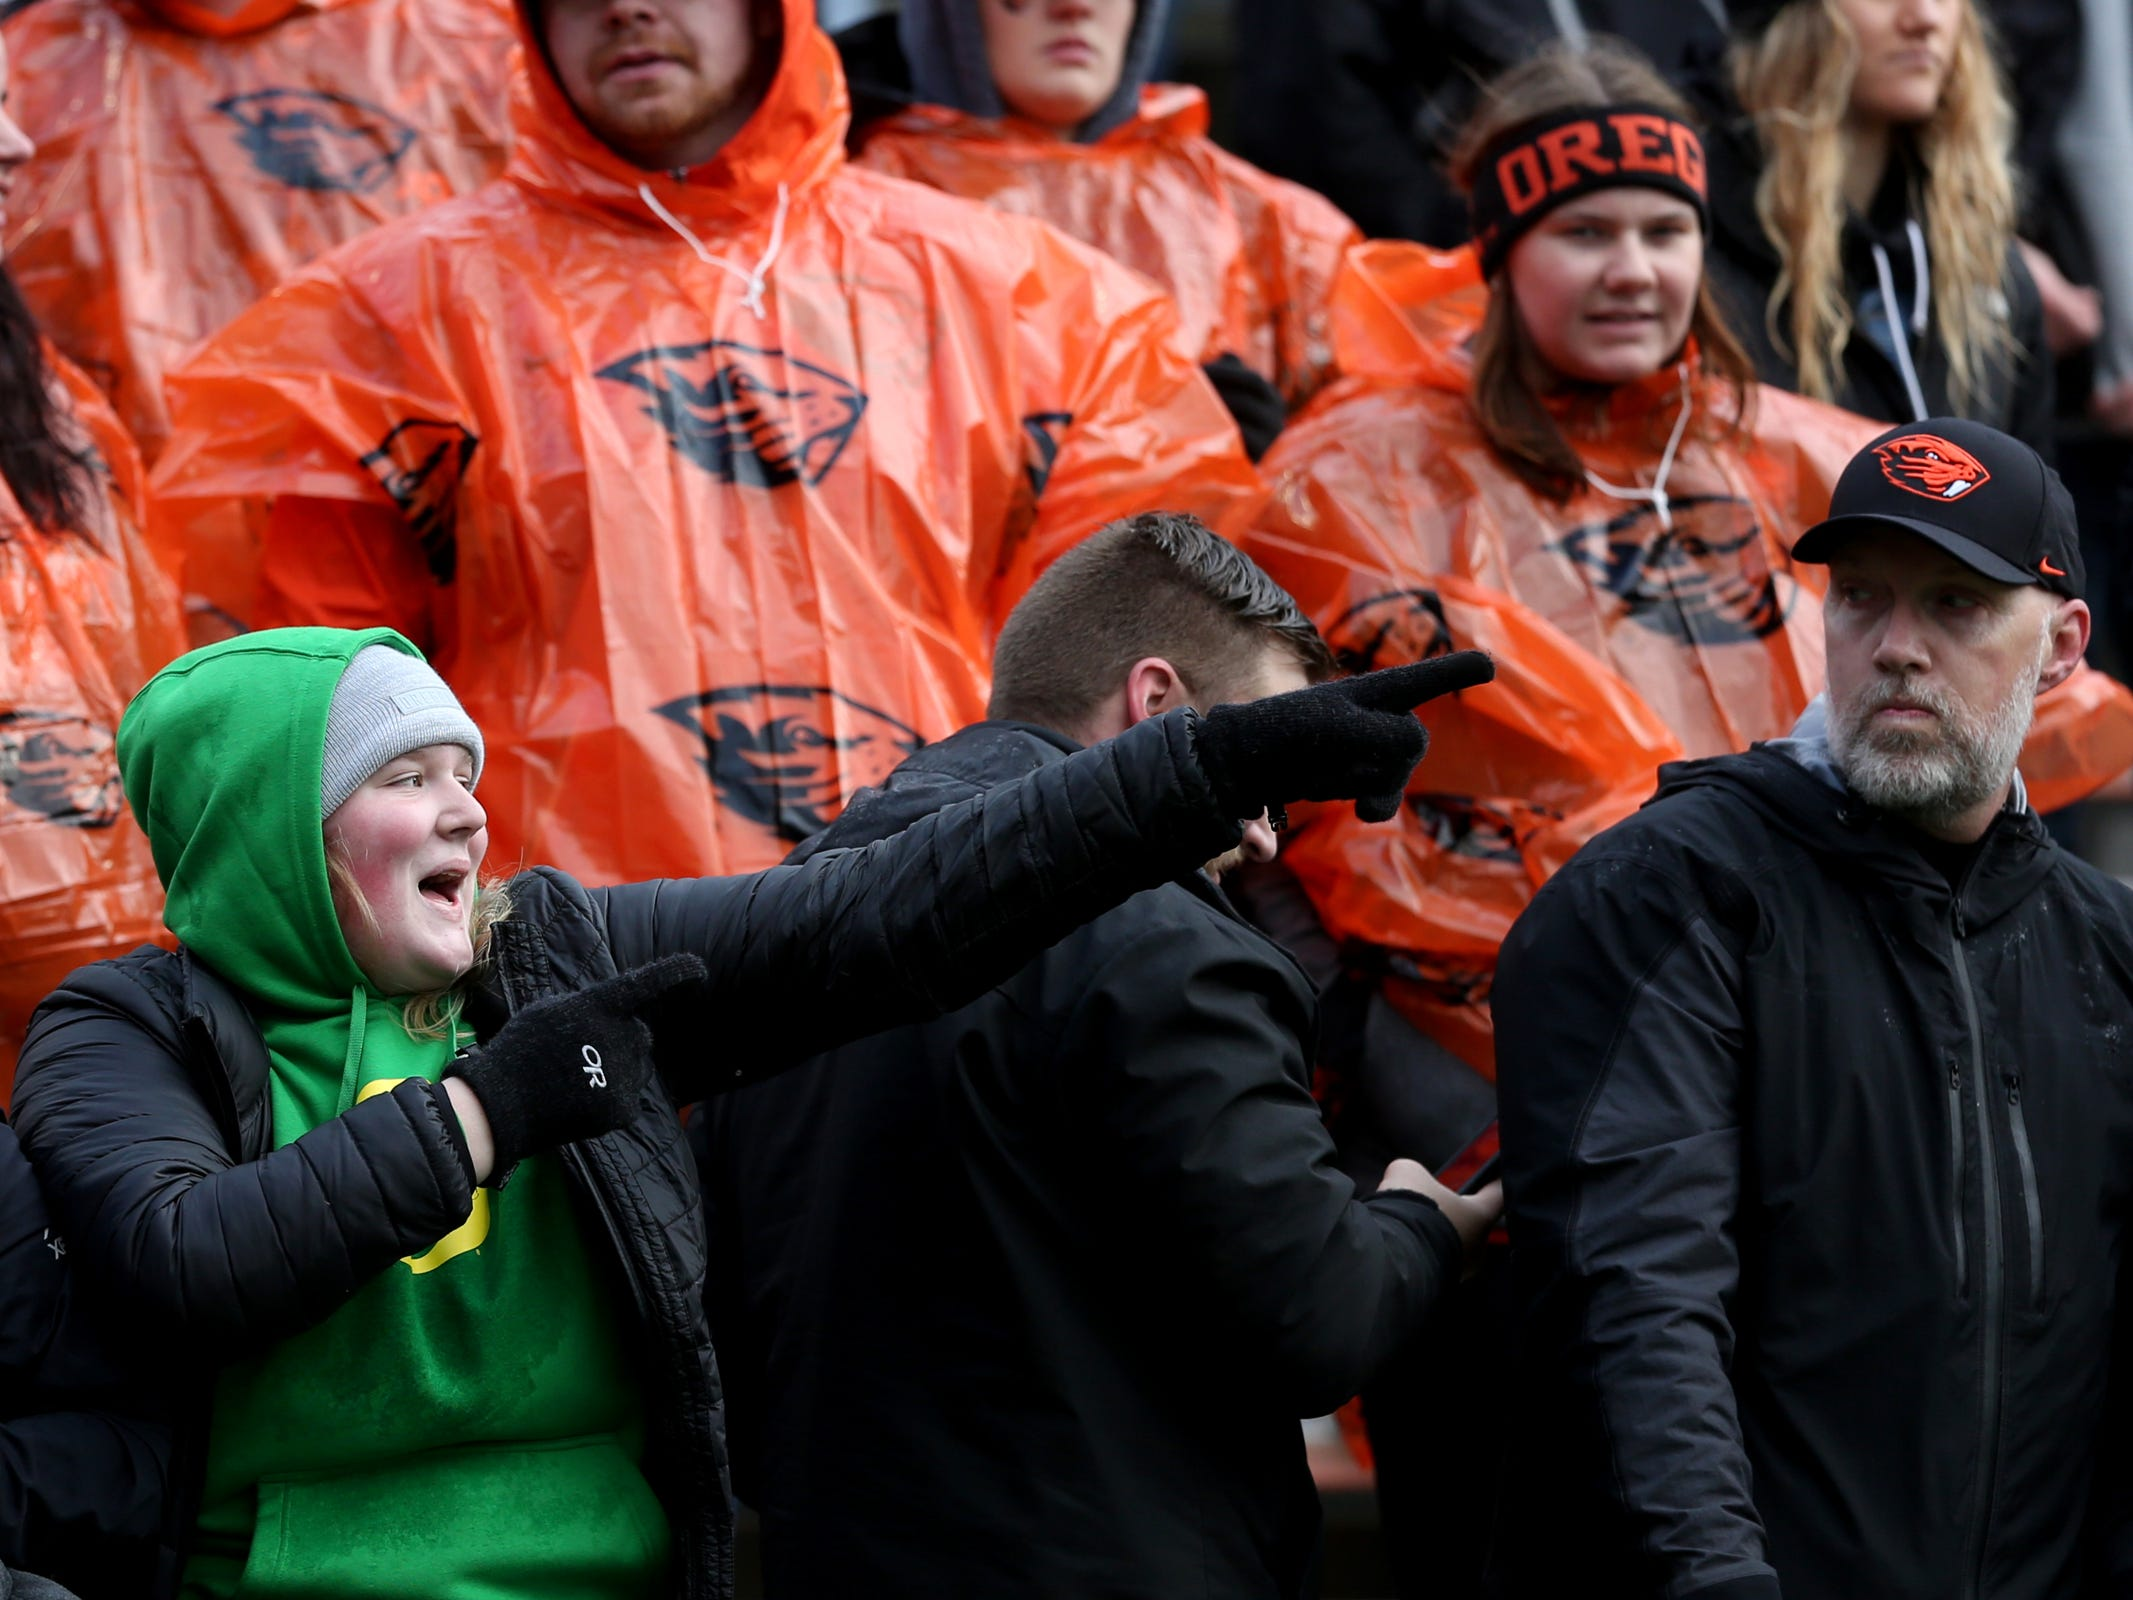 Oregon and Oregon State fans react to a play in the Oregon vs. Oregon State Civil war football game at Oregon State University in Corvallis on Friday, Nov. 23, 2018.